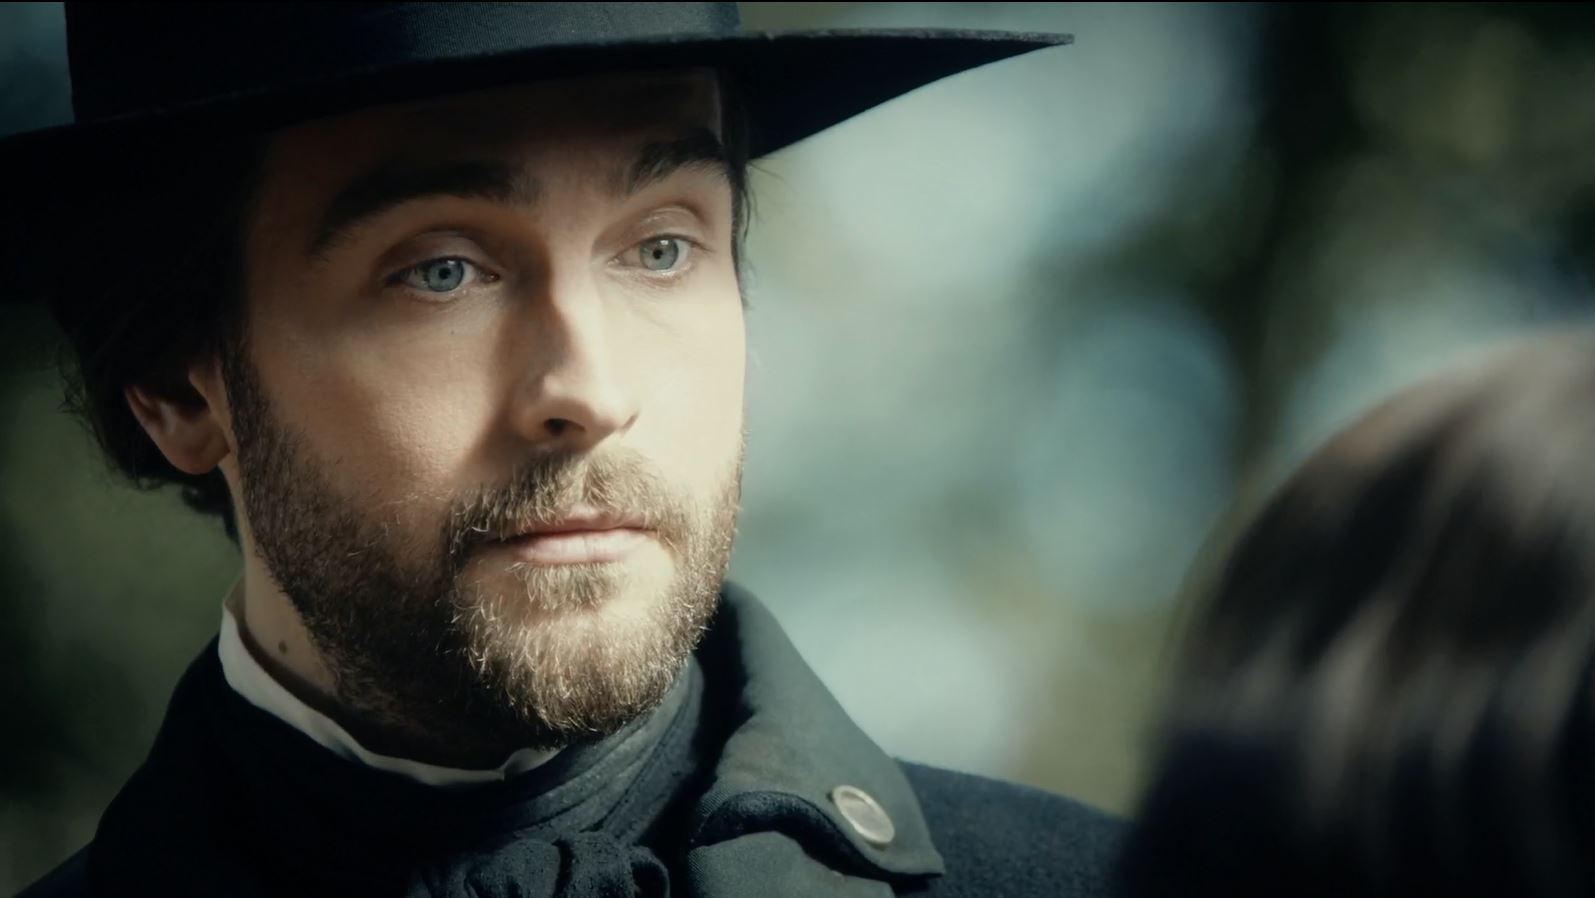 Sleepy Hollow Season 2 Finale Review. Tom Mison as Ichabod Crane in 1781